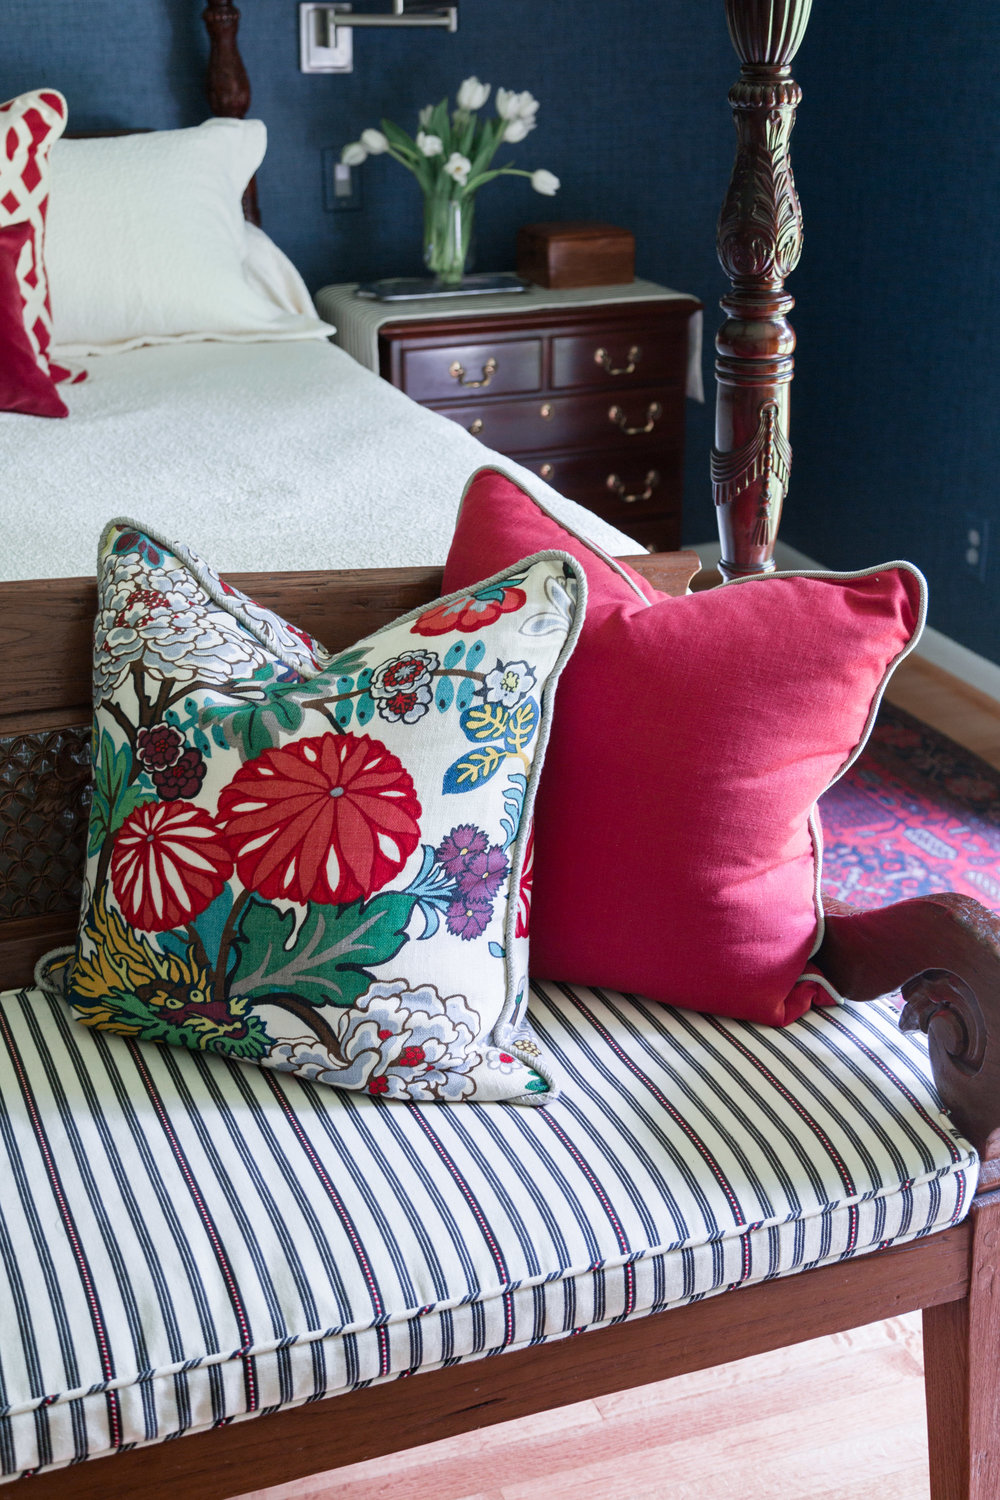 Bench at end of bed with red pillow and Chiang Mai fabric, Designer: Carla Aston